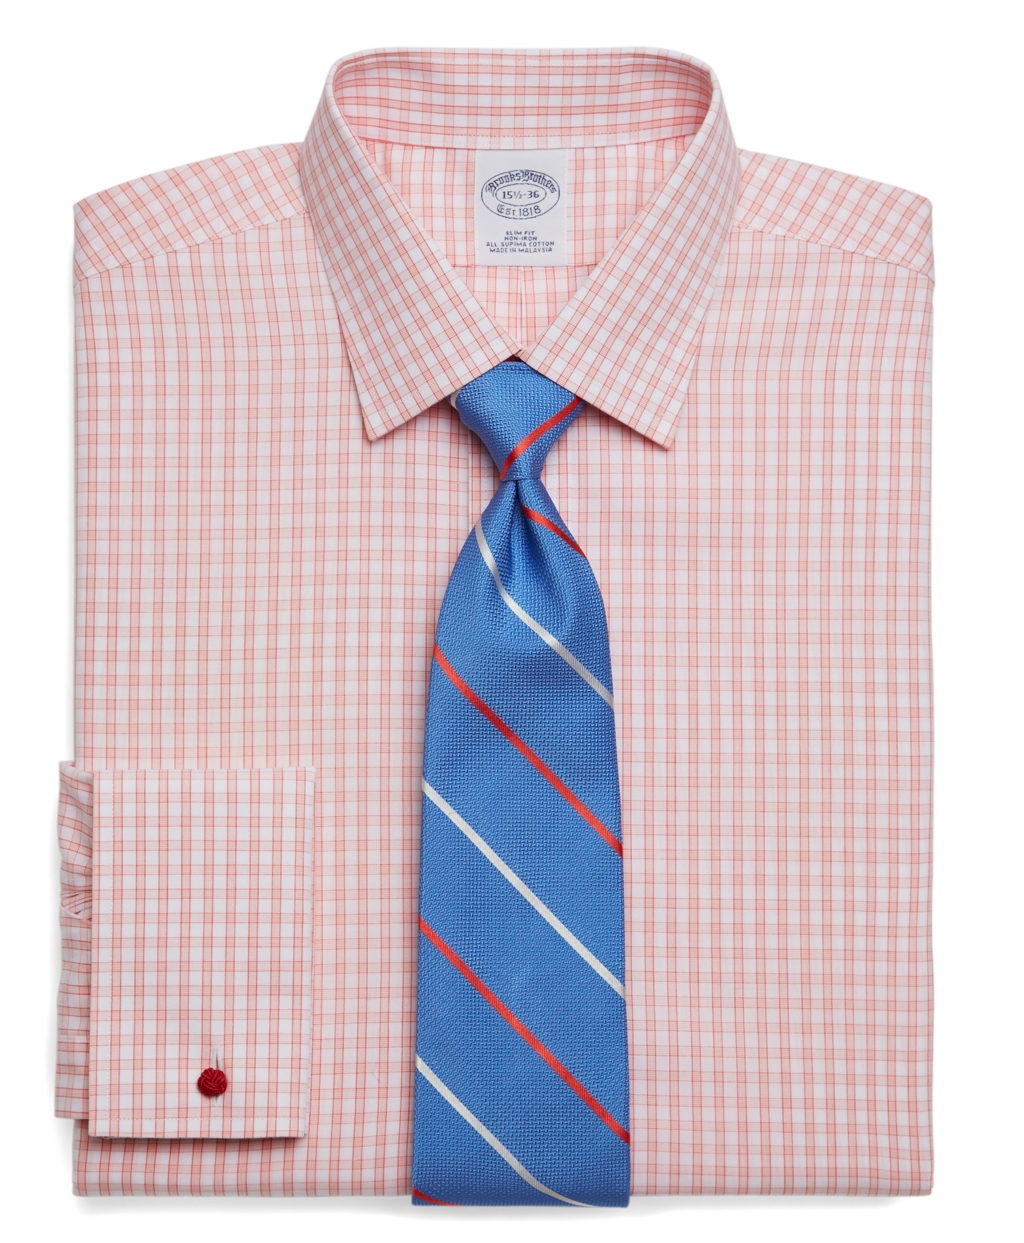 Brooks Brothers Supima Cotton Noniron Slim Fit Windowpane